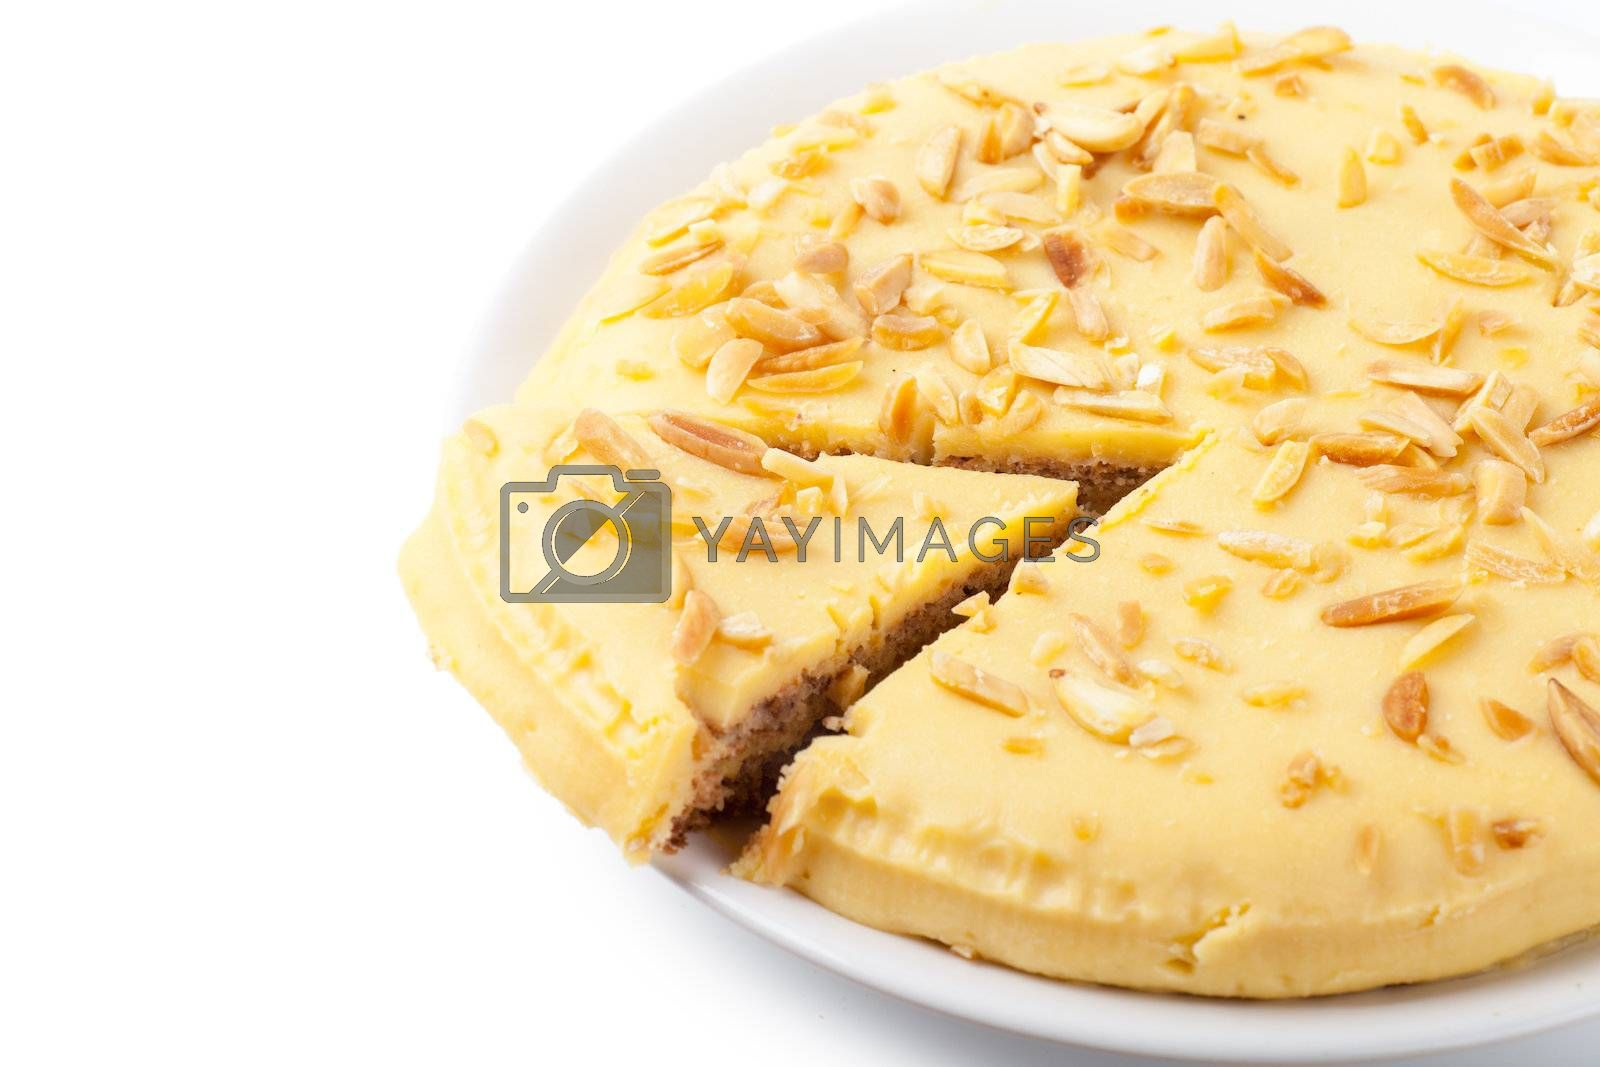 Closeup view of sweet pie with separated piece on a white plate